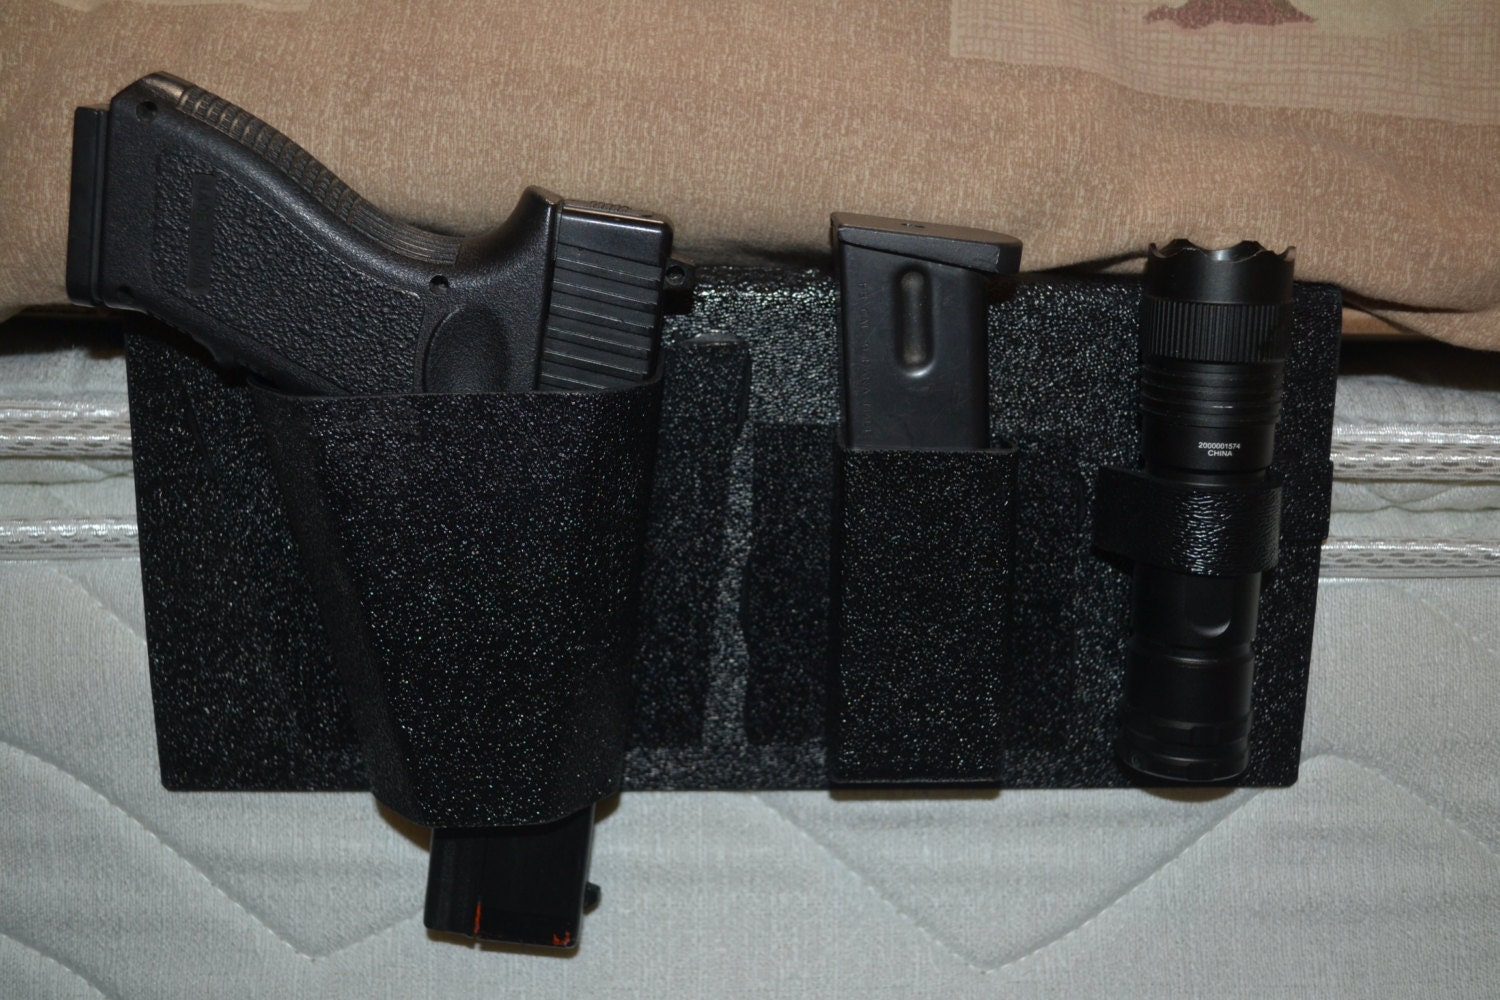 Saf Sleeper Bedside Gun Holster With Free Flash Light And